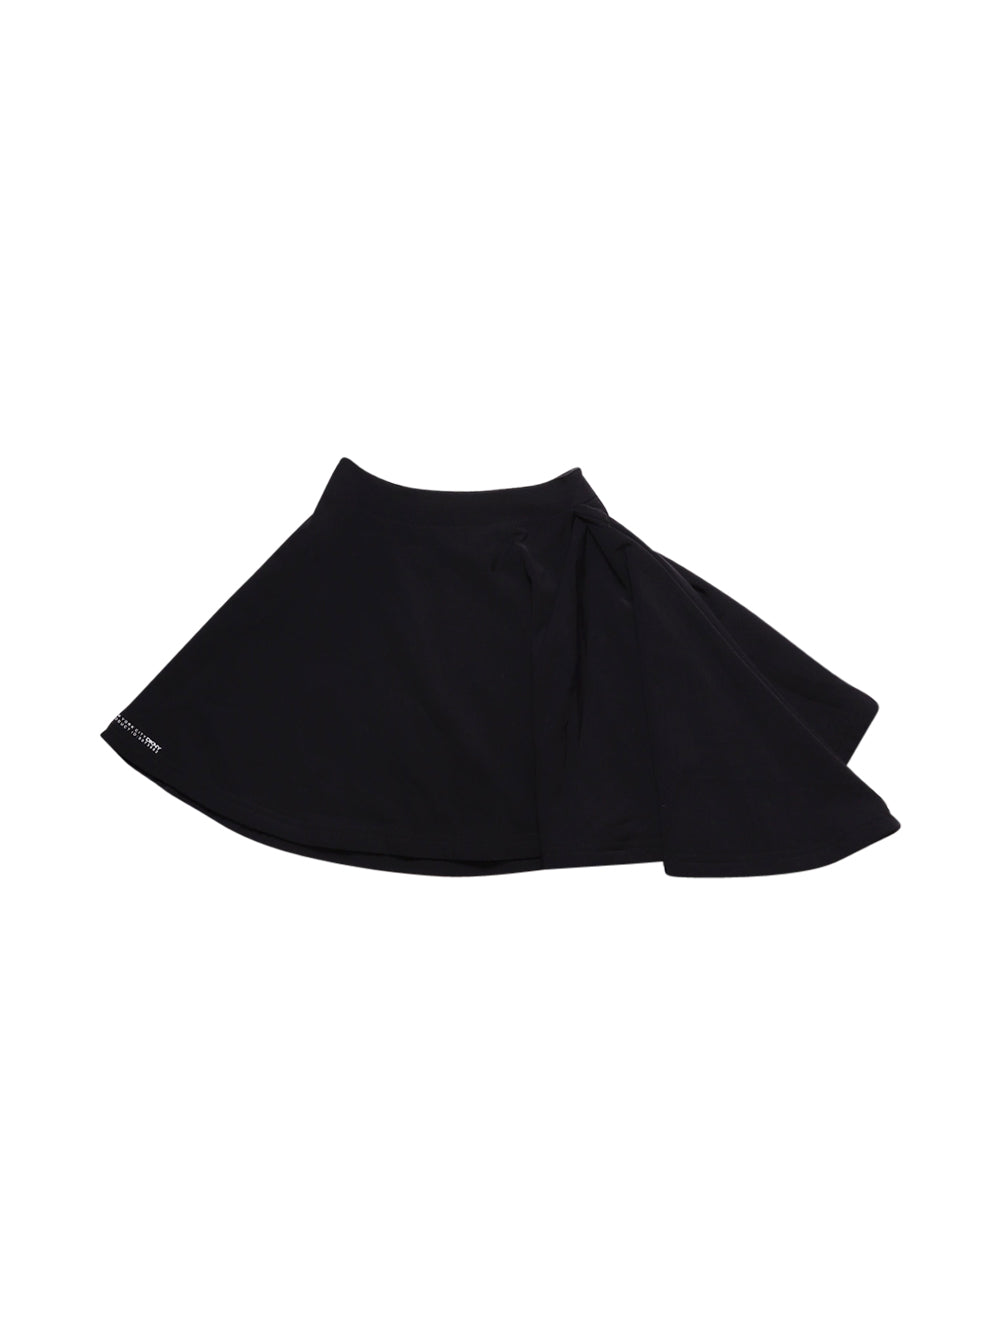 Front photo of Preloved DKNY Black Girl's skirt - size 5-6 yrs